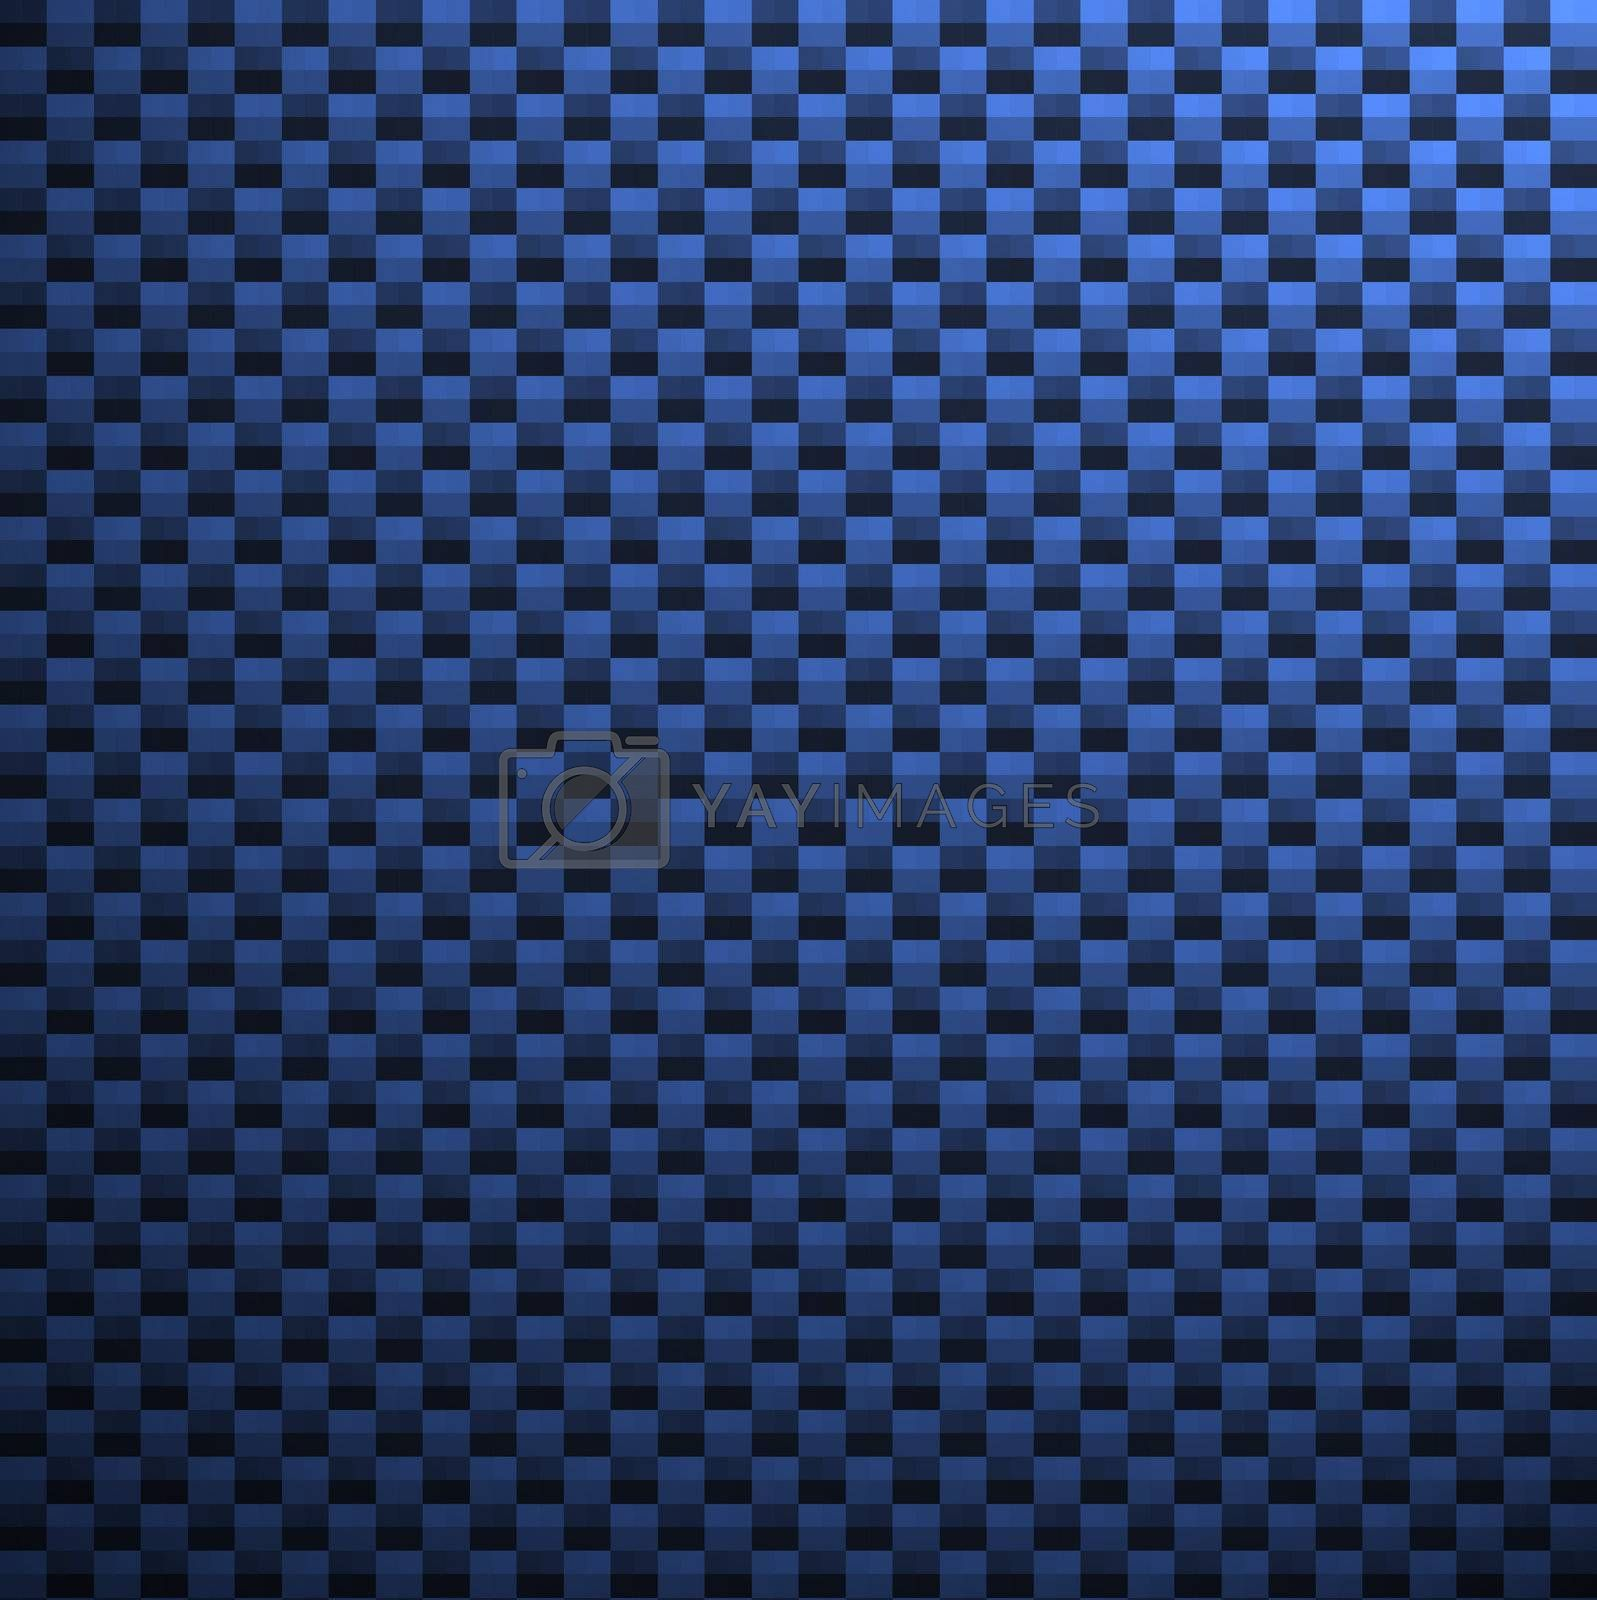 A high-res, blue carbon fiber pattern / texture that you can apply in both print and web design.